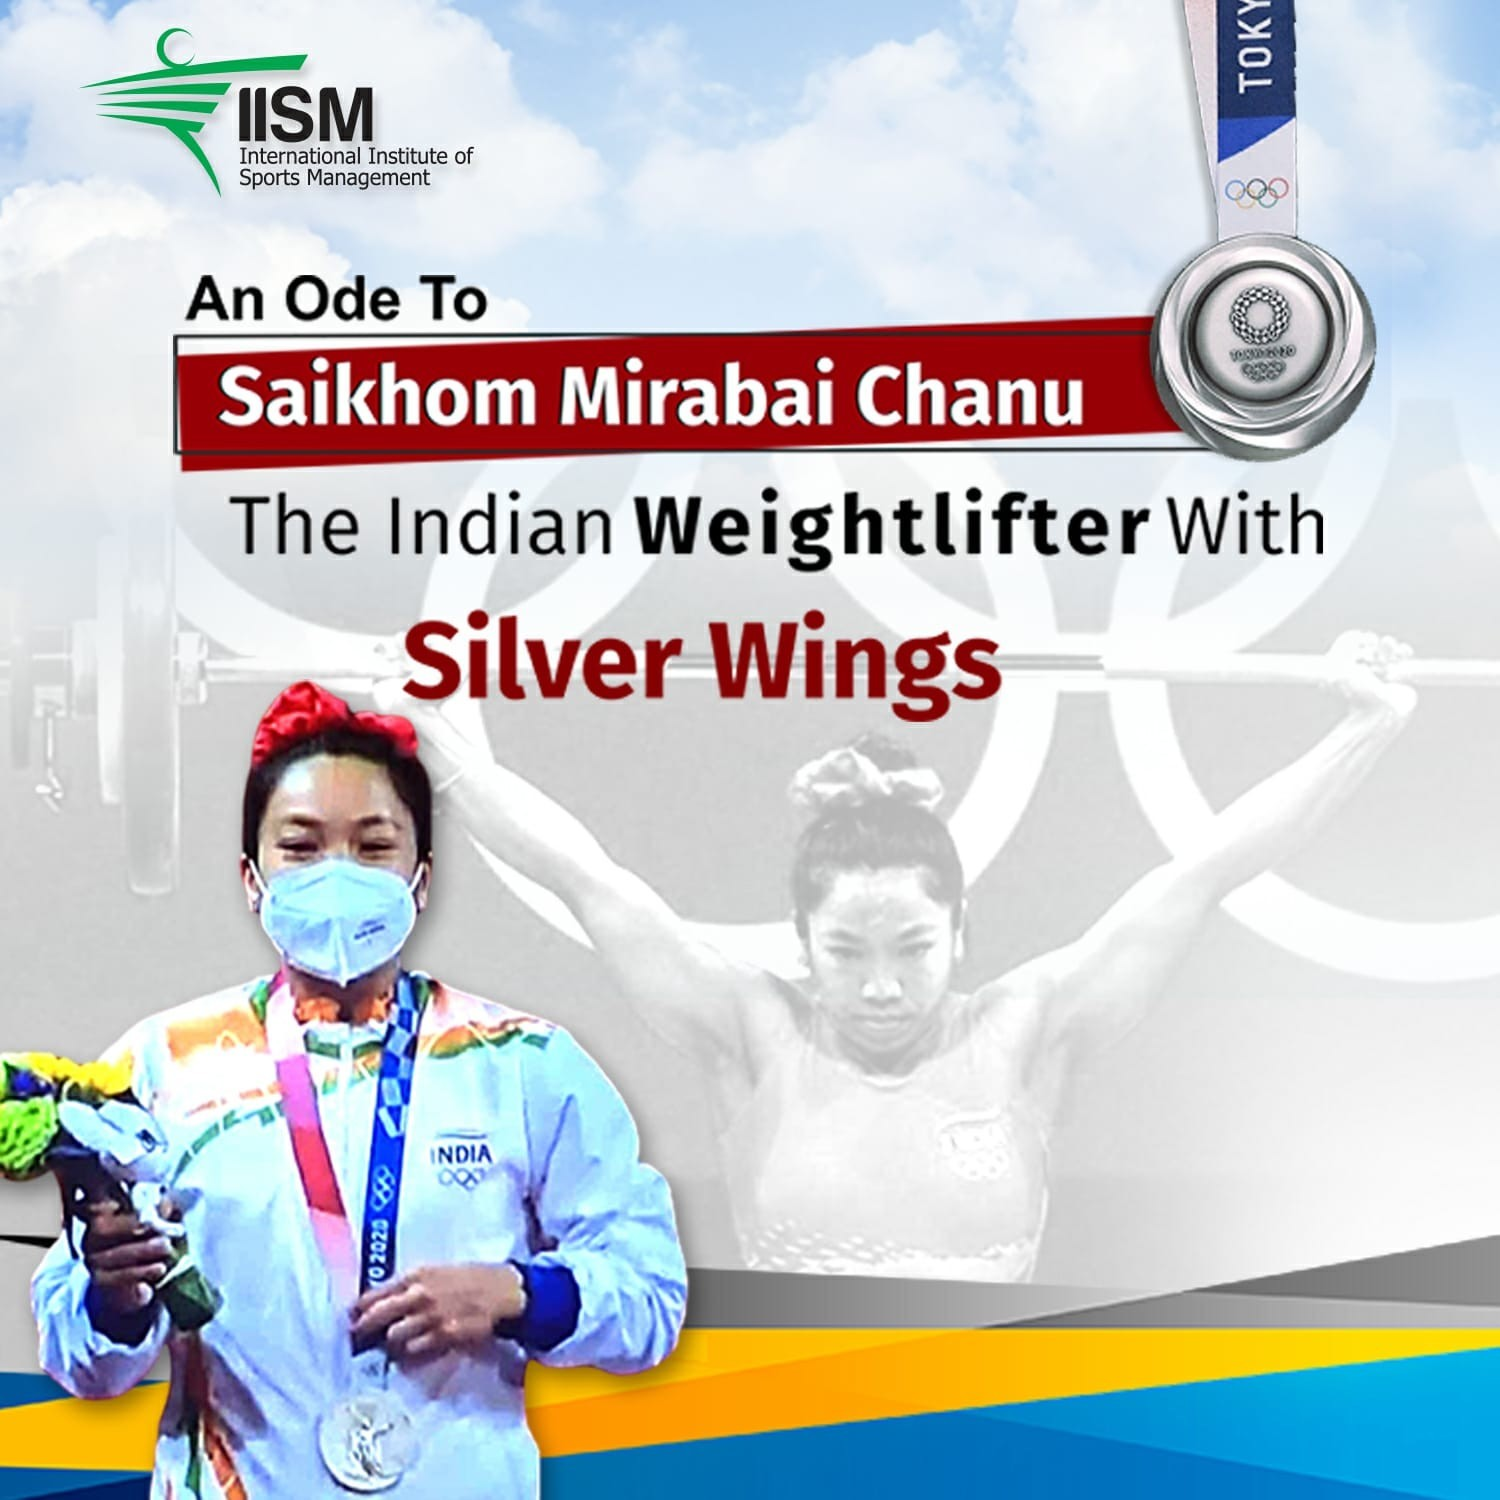 Saikhom Mirabai Chanu- the Indian Weightlifter with Silver Wings blog by IISM